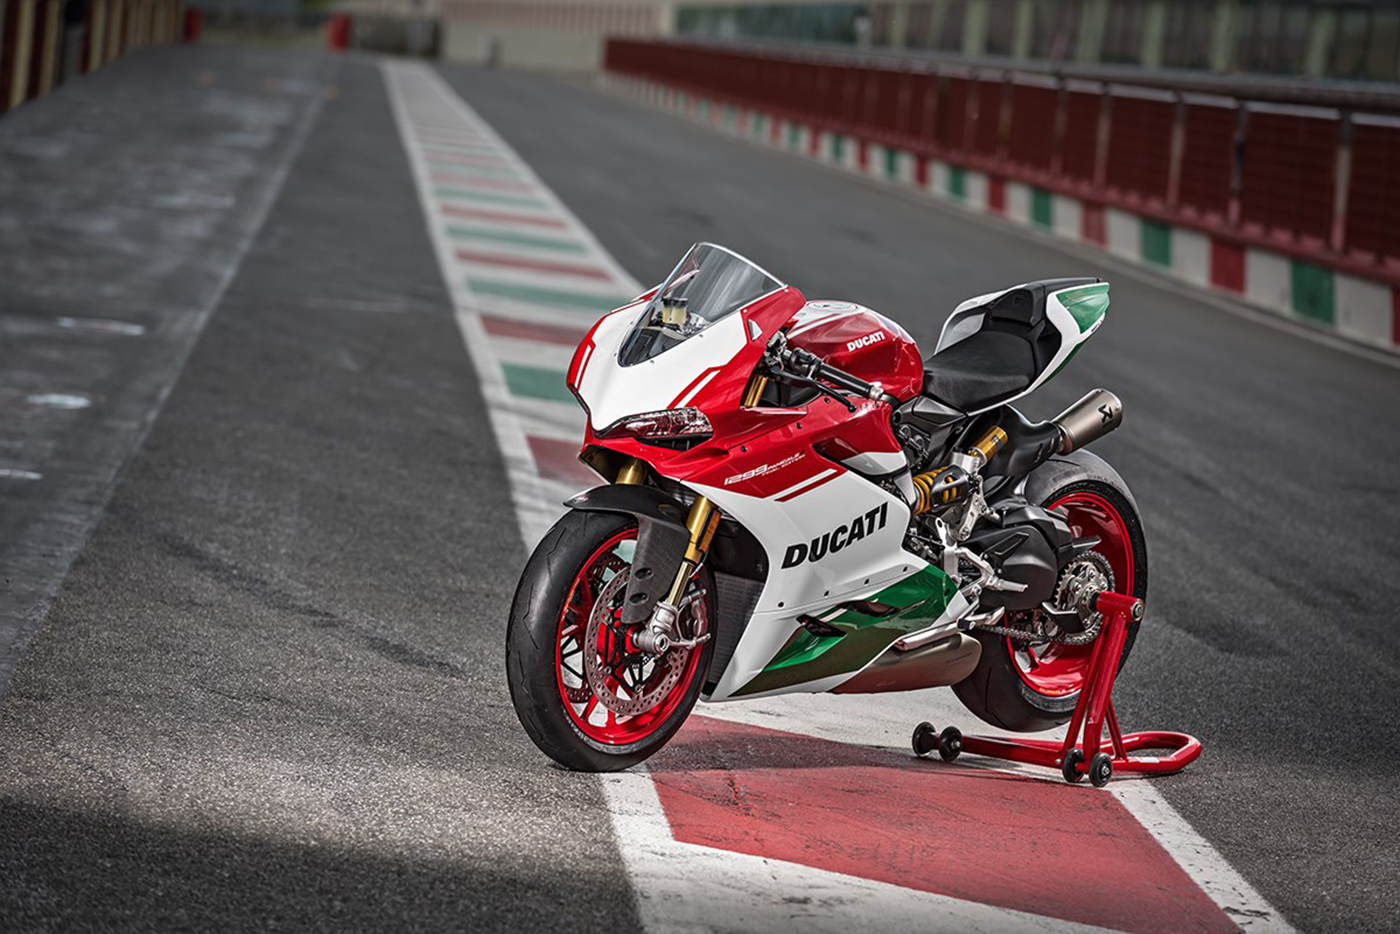 ducati-1299-panigale-r-final-edition-32.jpg